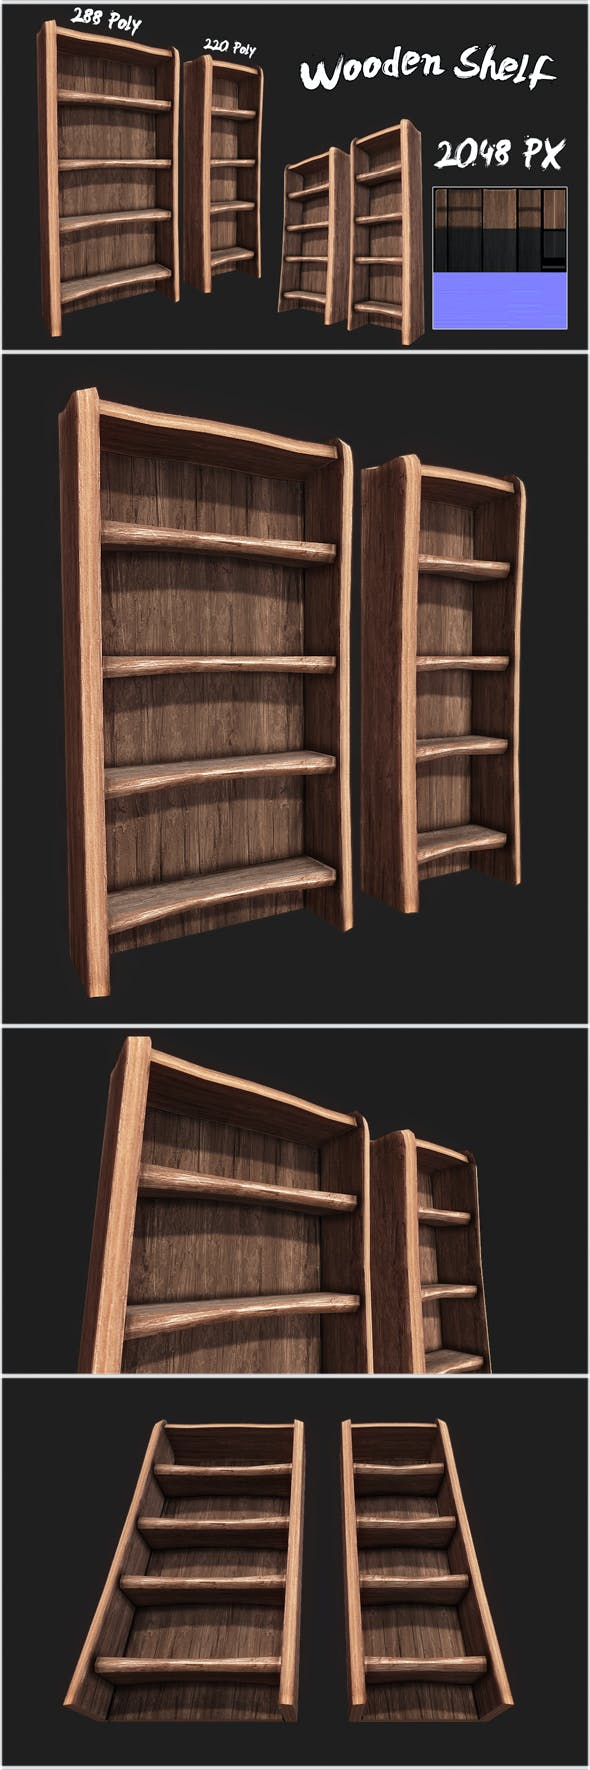 Rustic Wooden Shelf 01 - 3DOcean Item for Sale